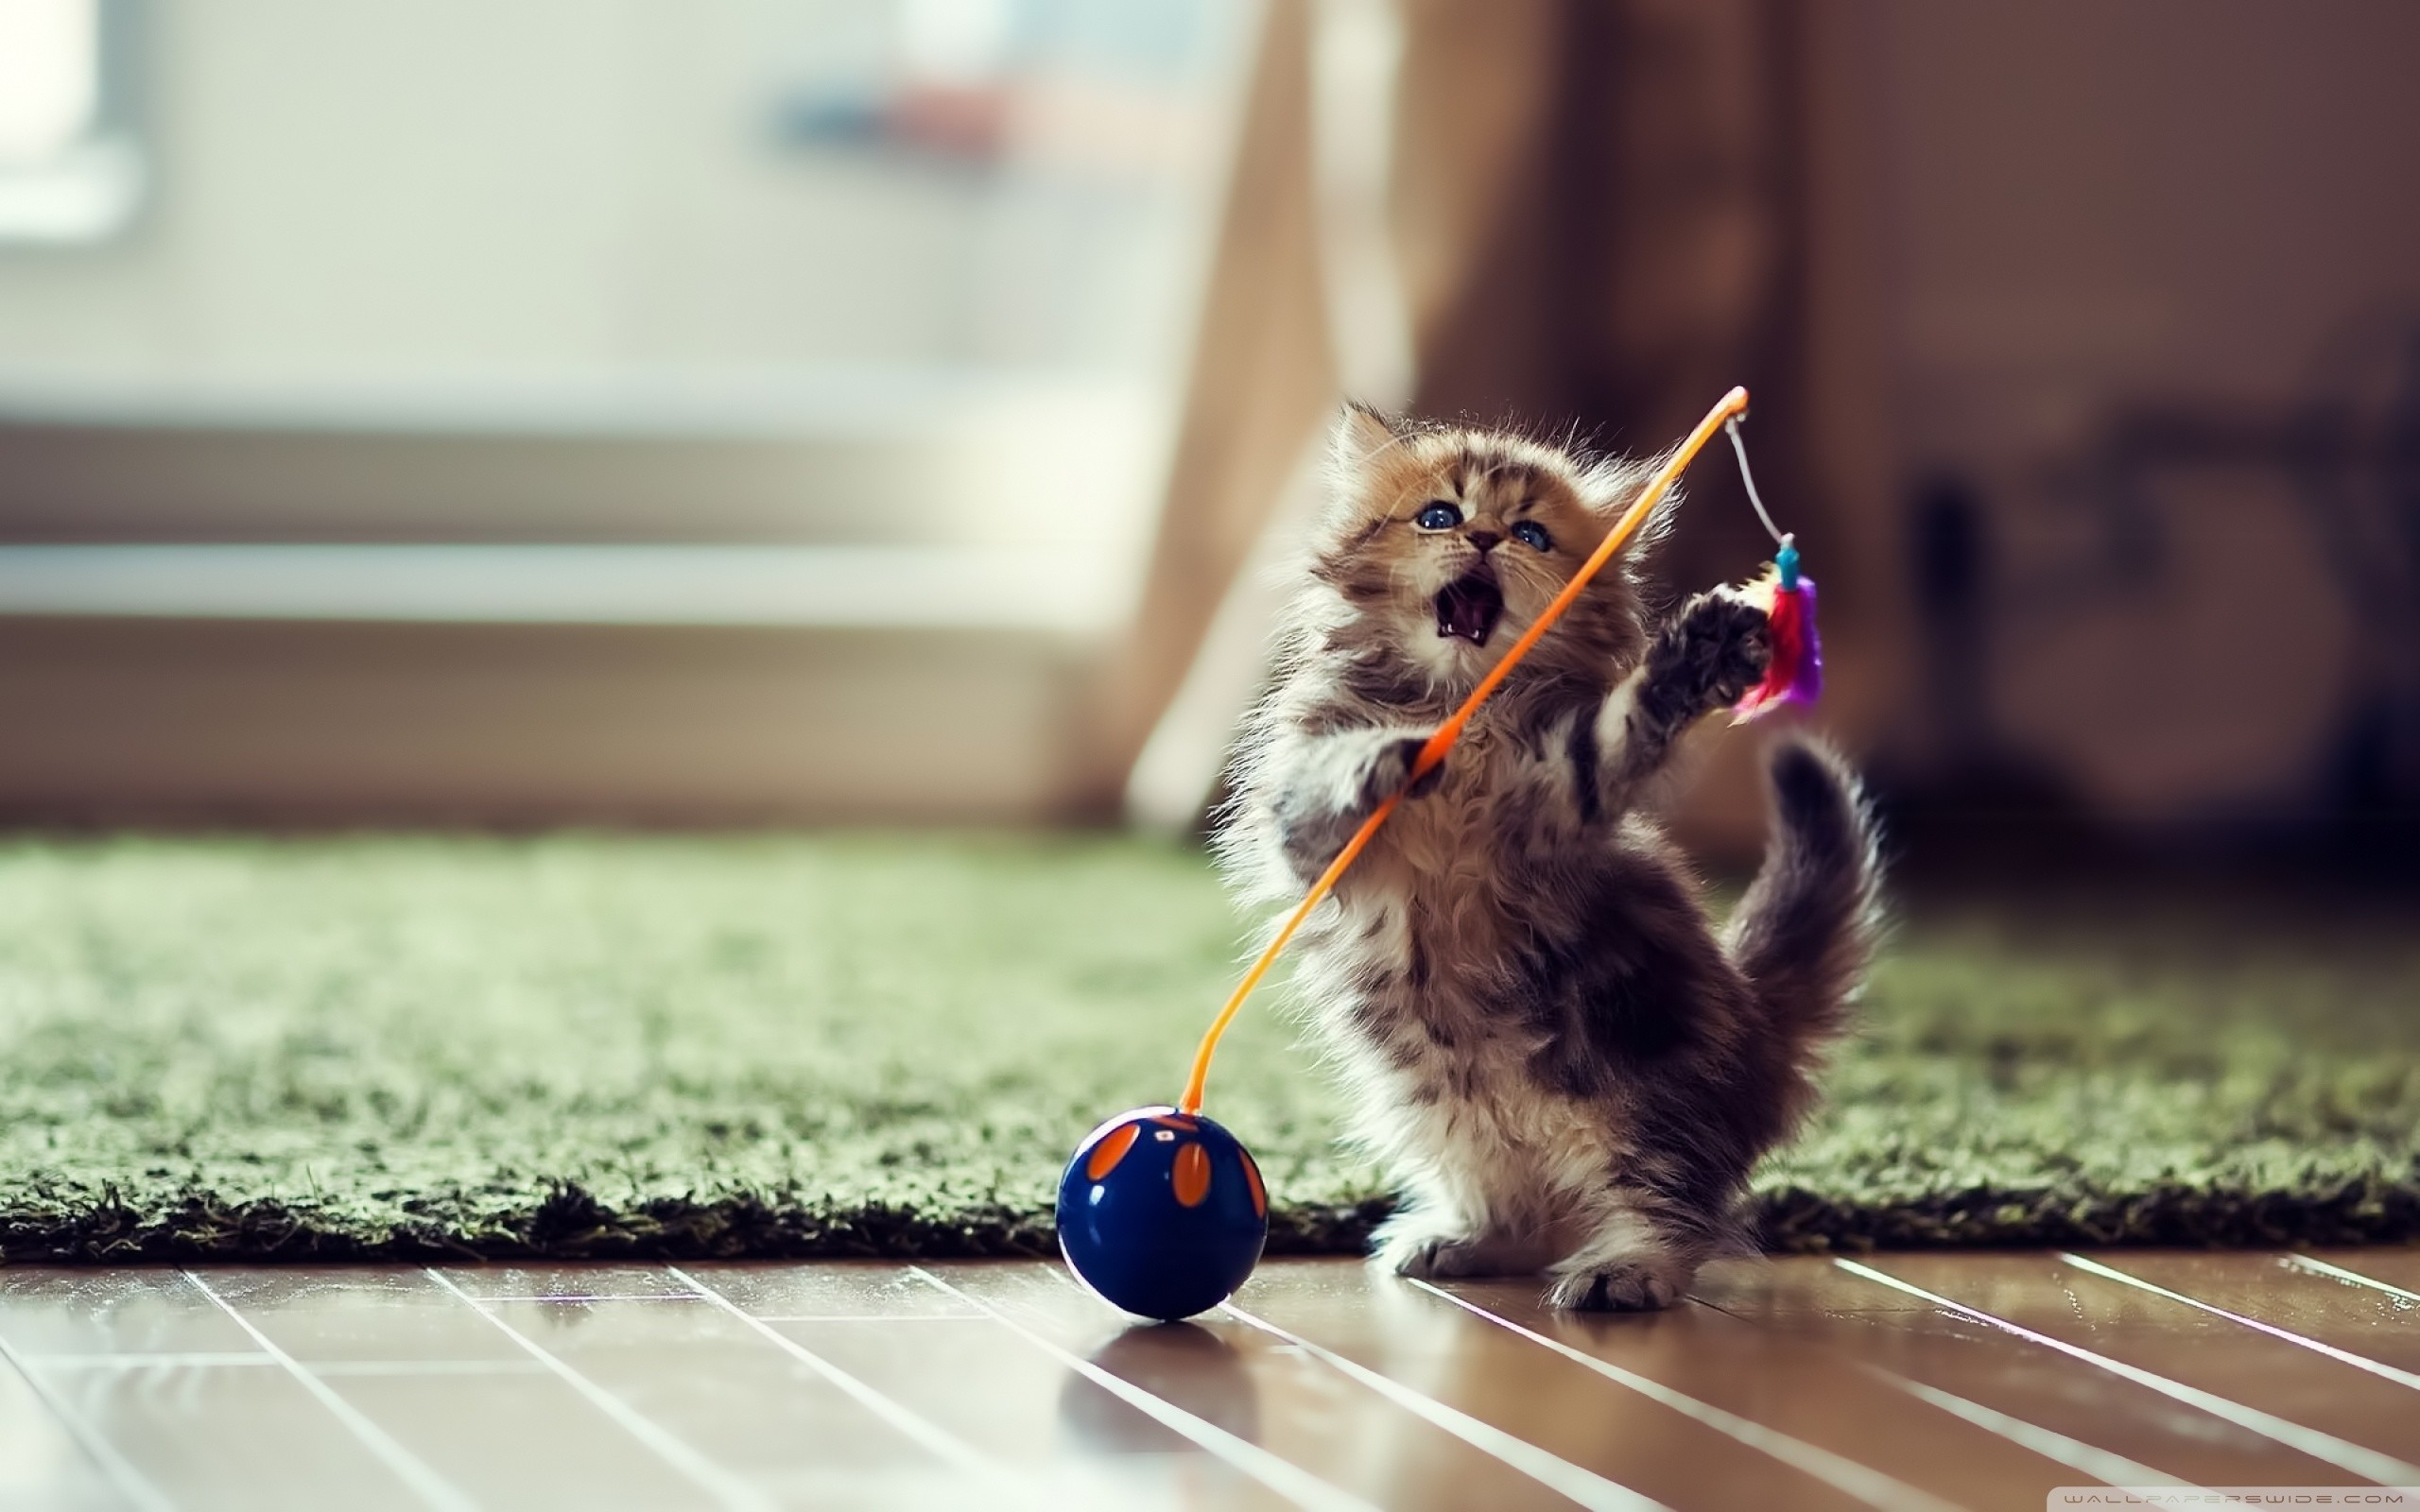 2560x1600 ... kittens wallpapers photos and desktop backgrounds for mobile up; dancer  cat hd desktop wallpaper high definition fullscreen ...